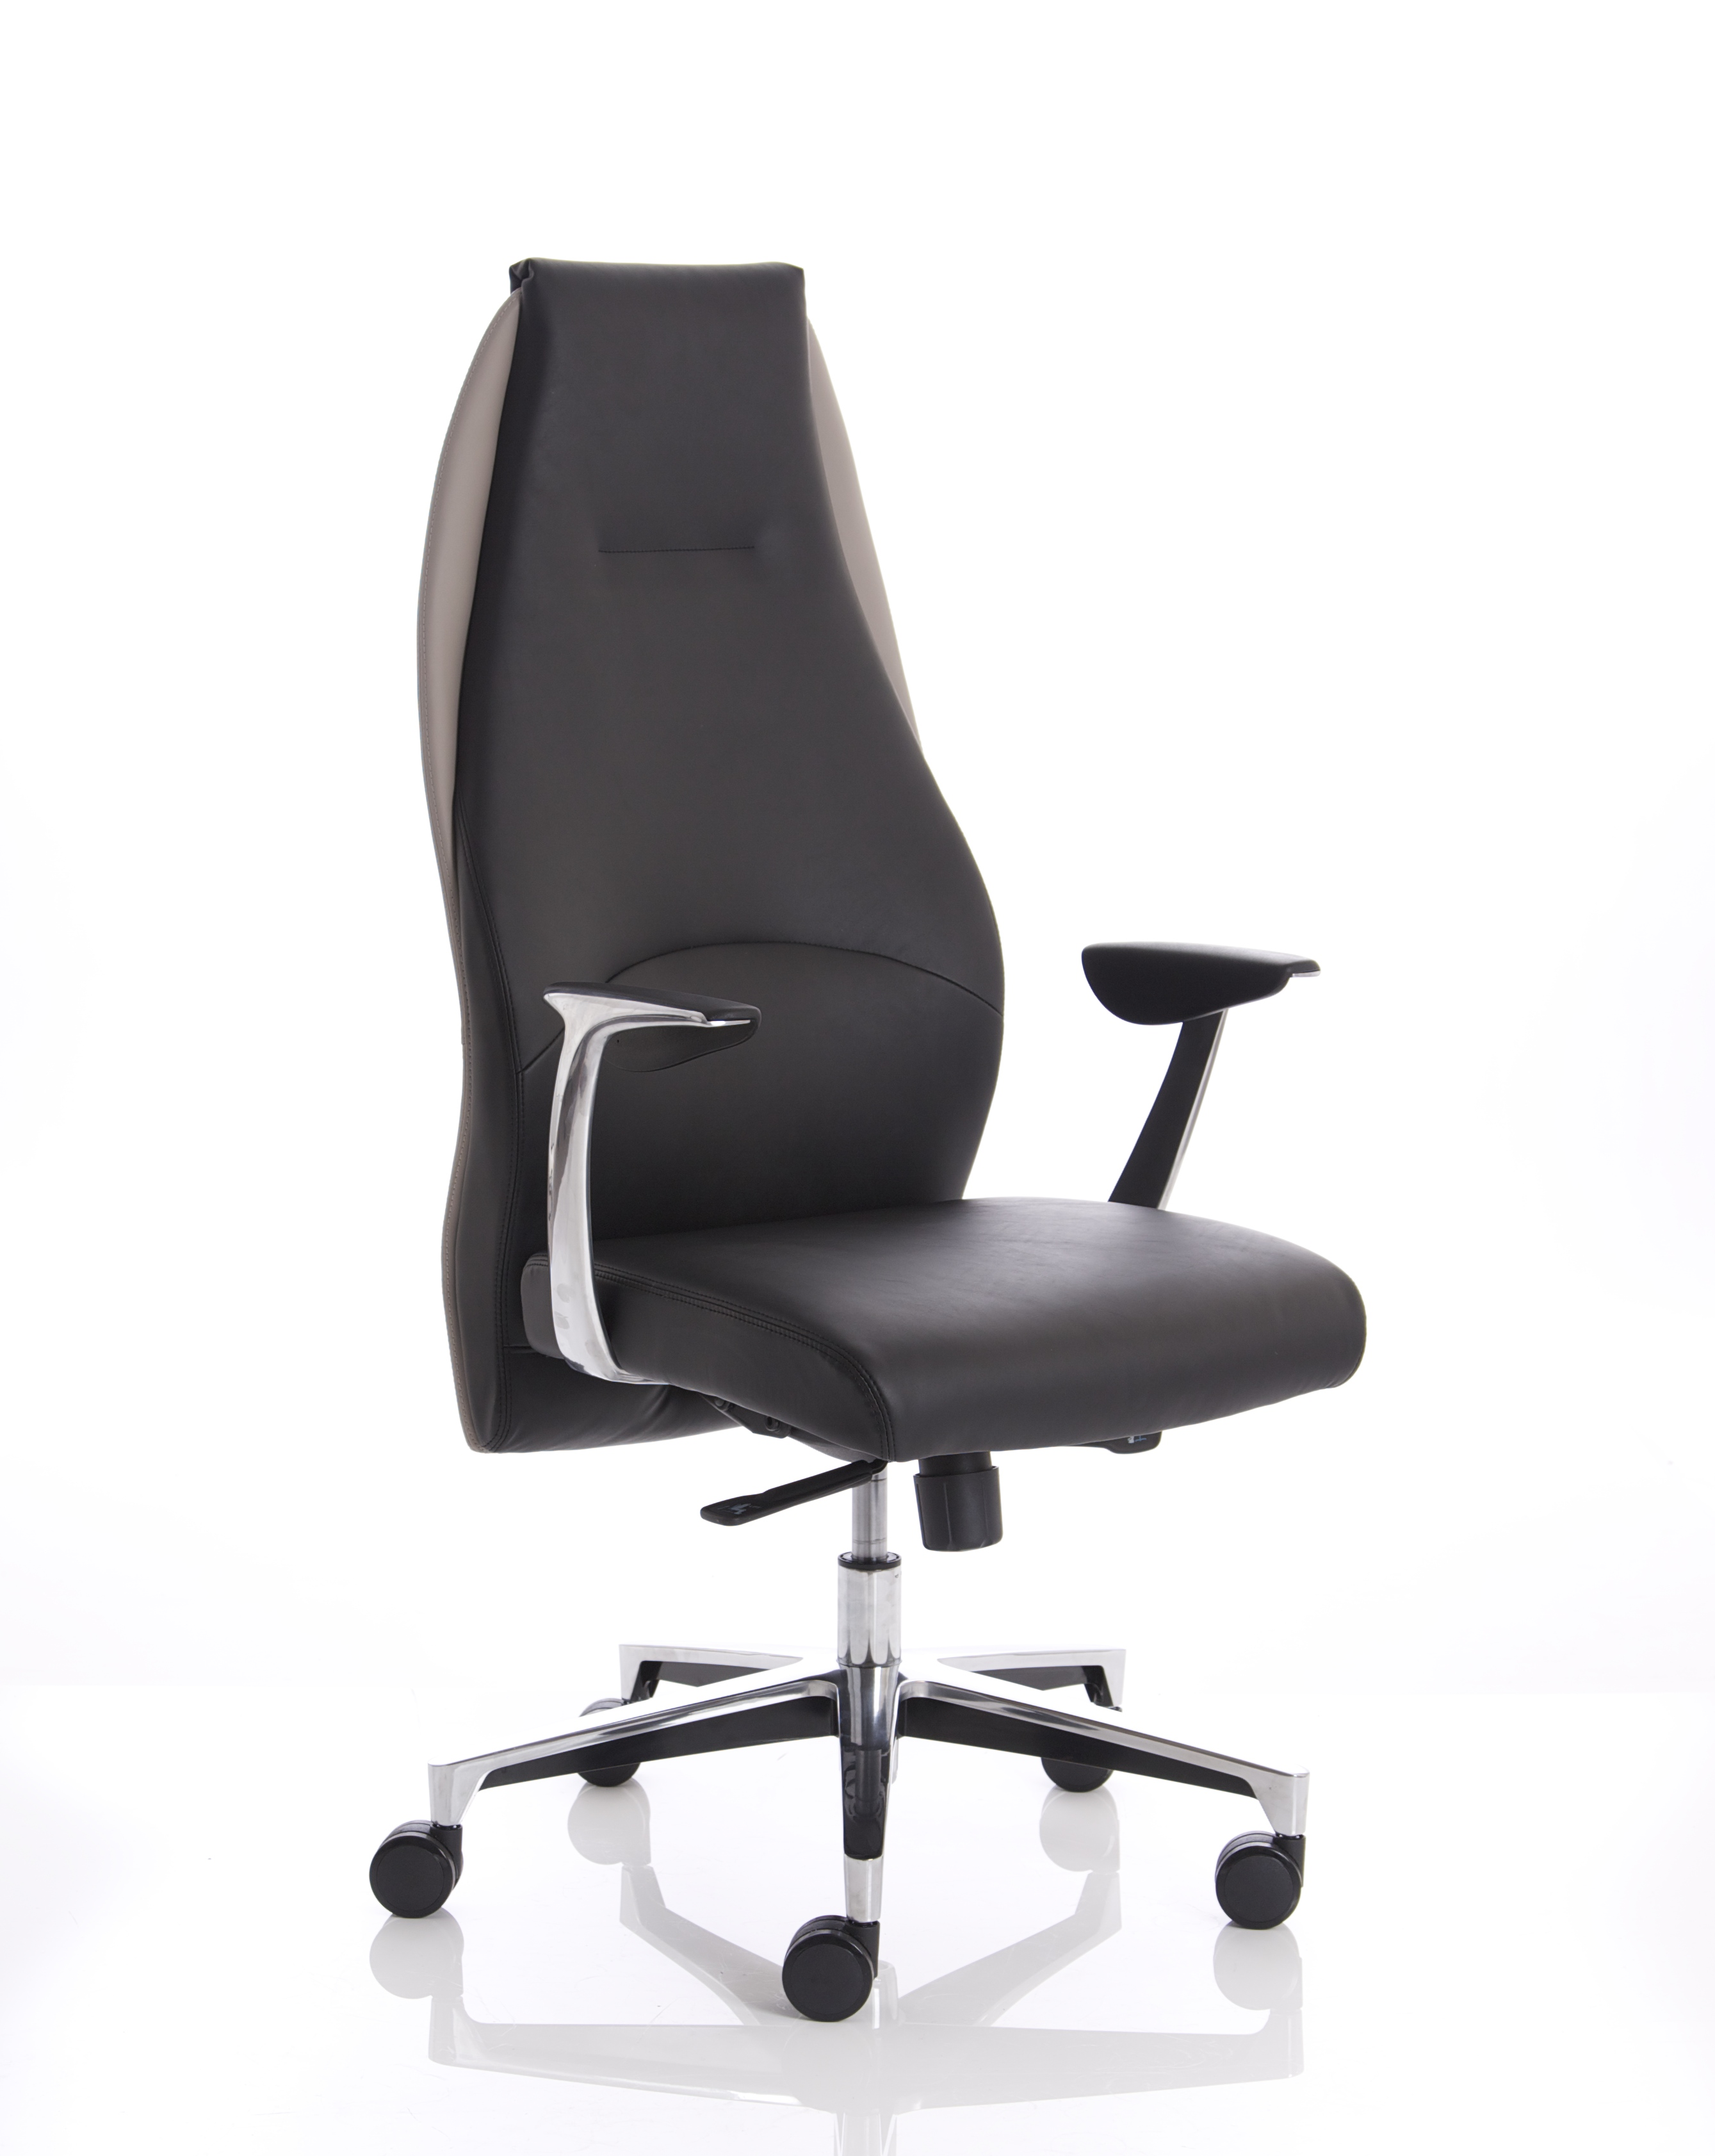 Executive Chairs Mien Black and Mink Executive Chair EX000183